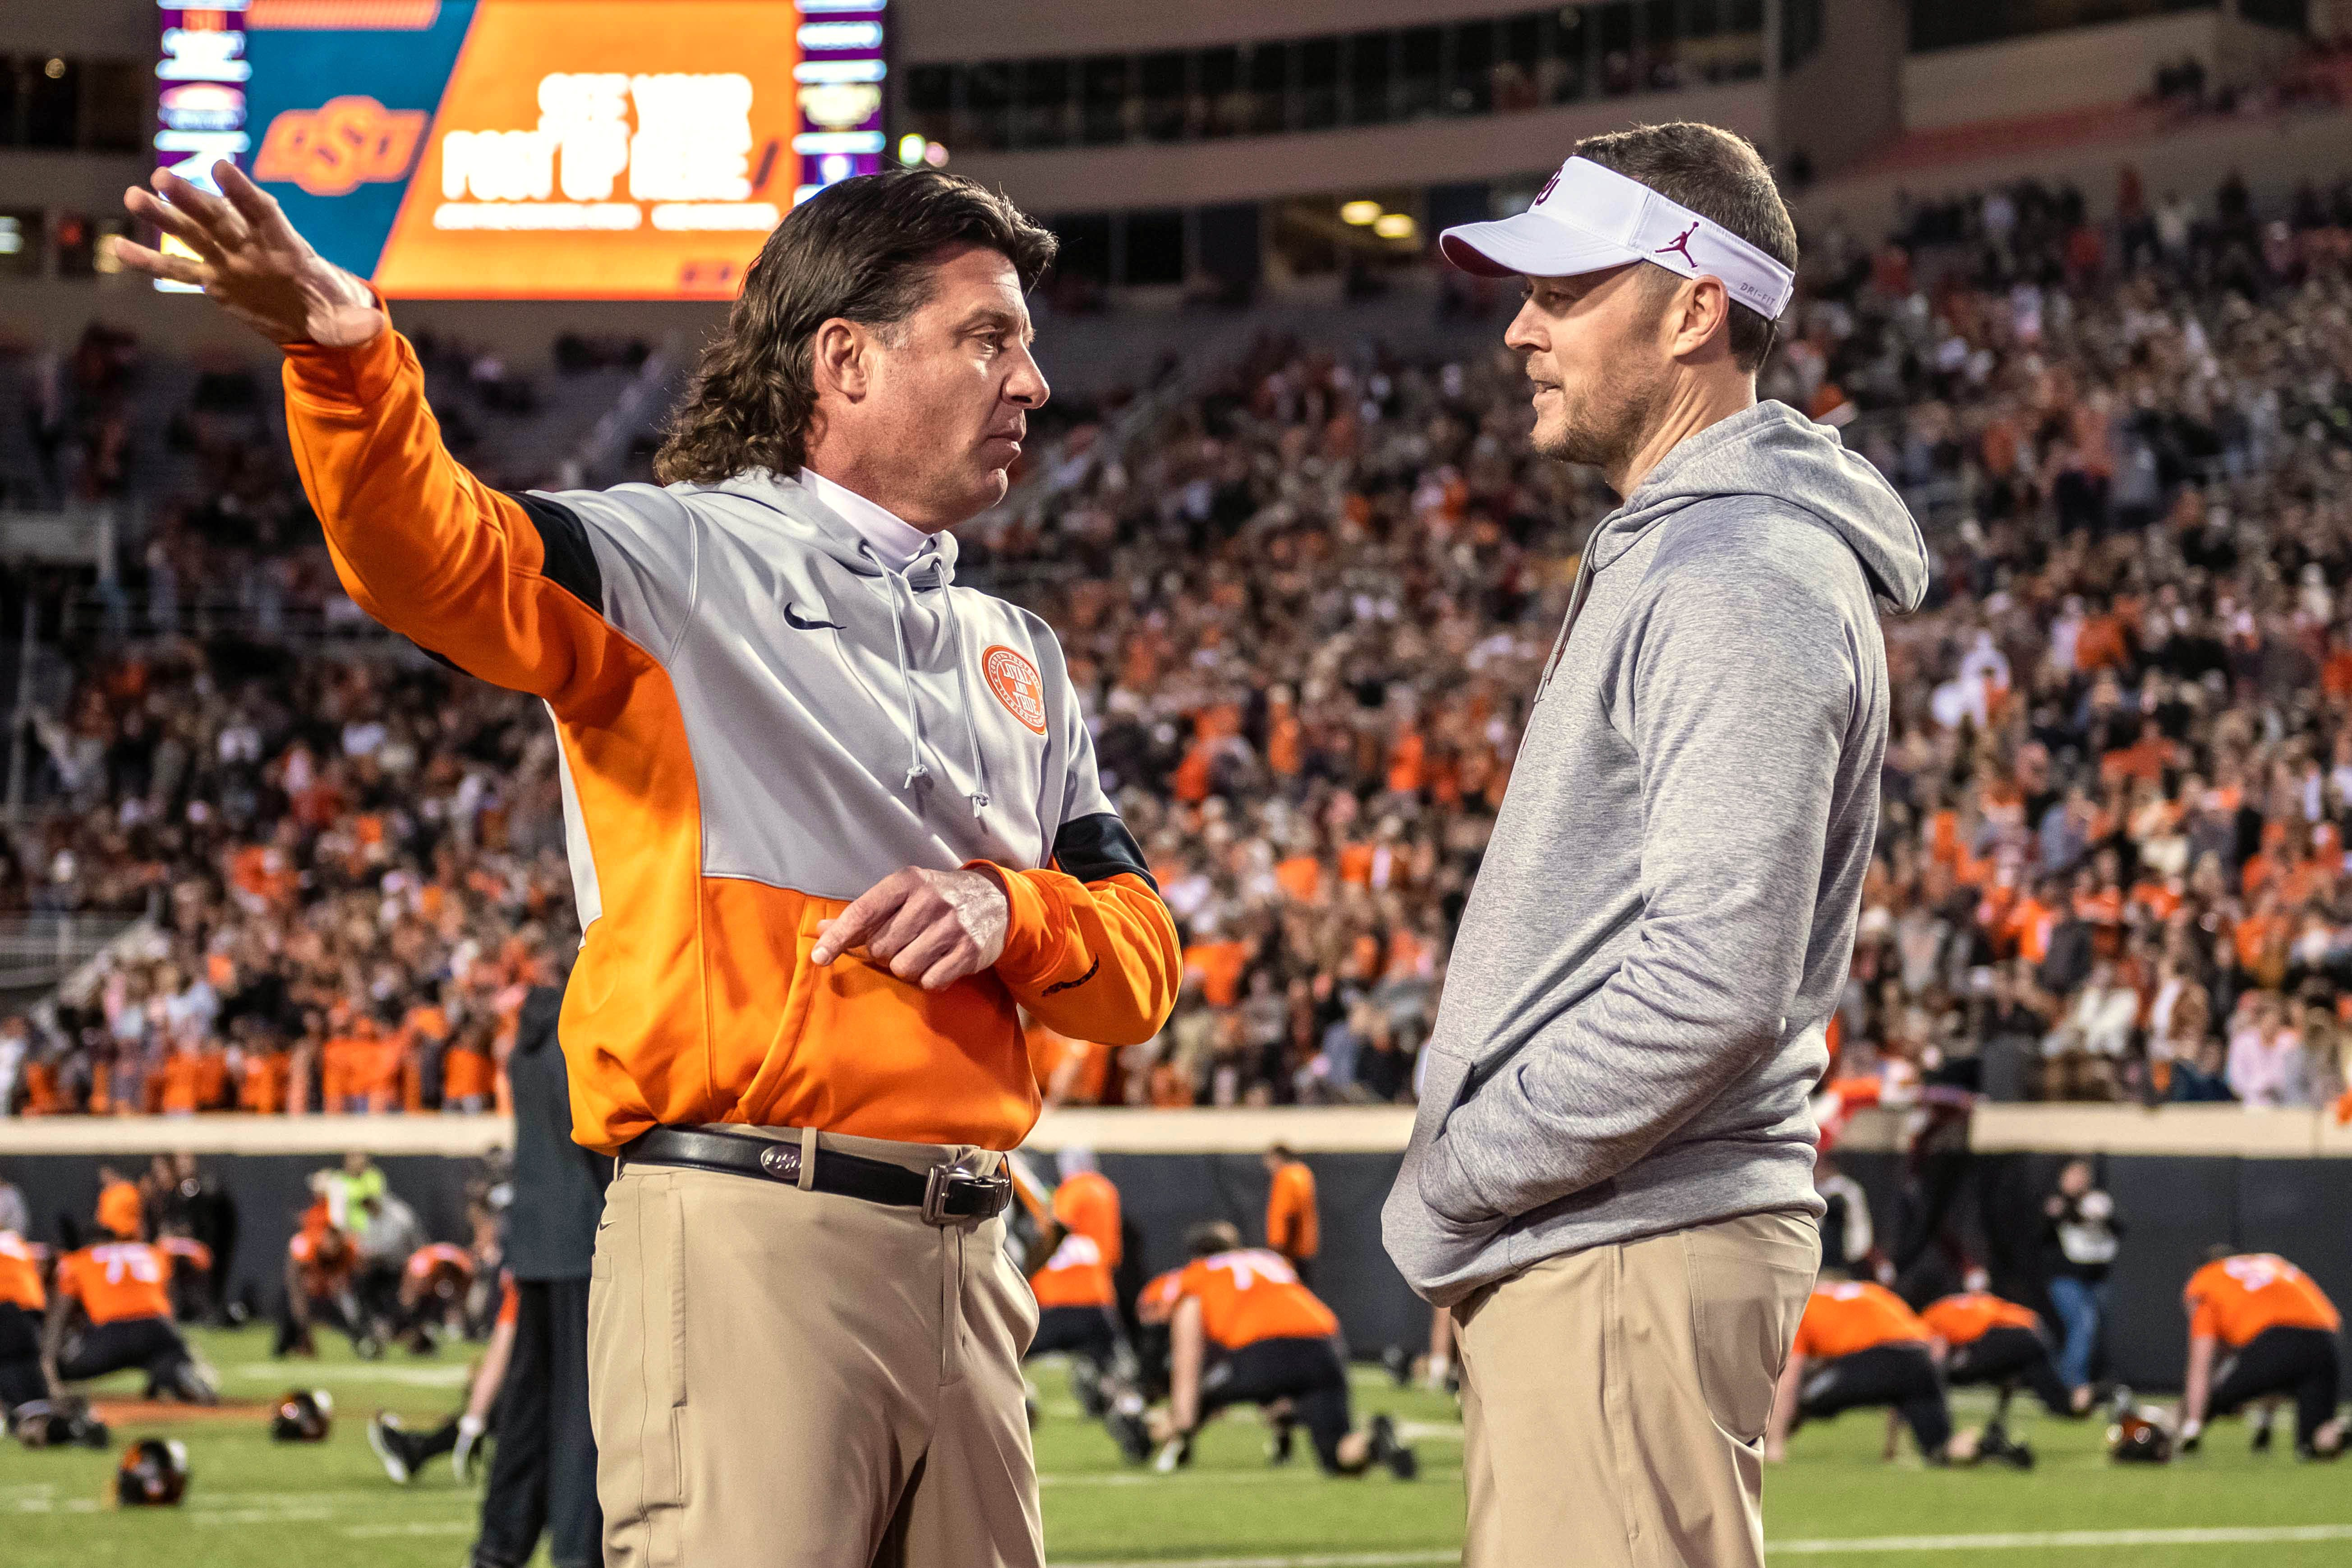 Opinion: Oklahoma-Oklahoma State 'Bedlam' rivalry has become one of nation's best